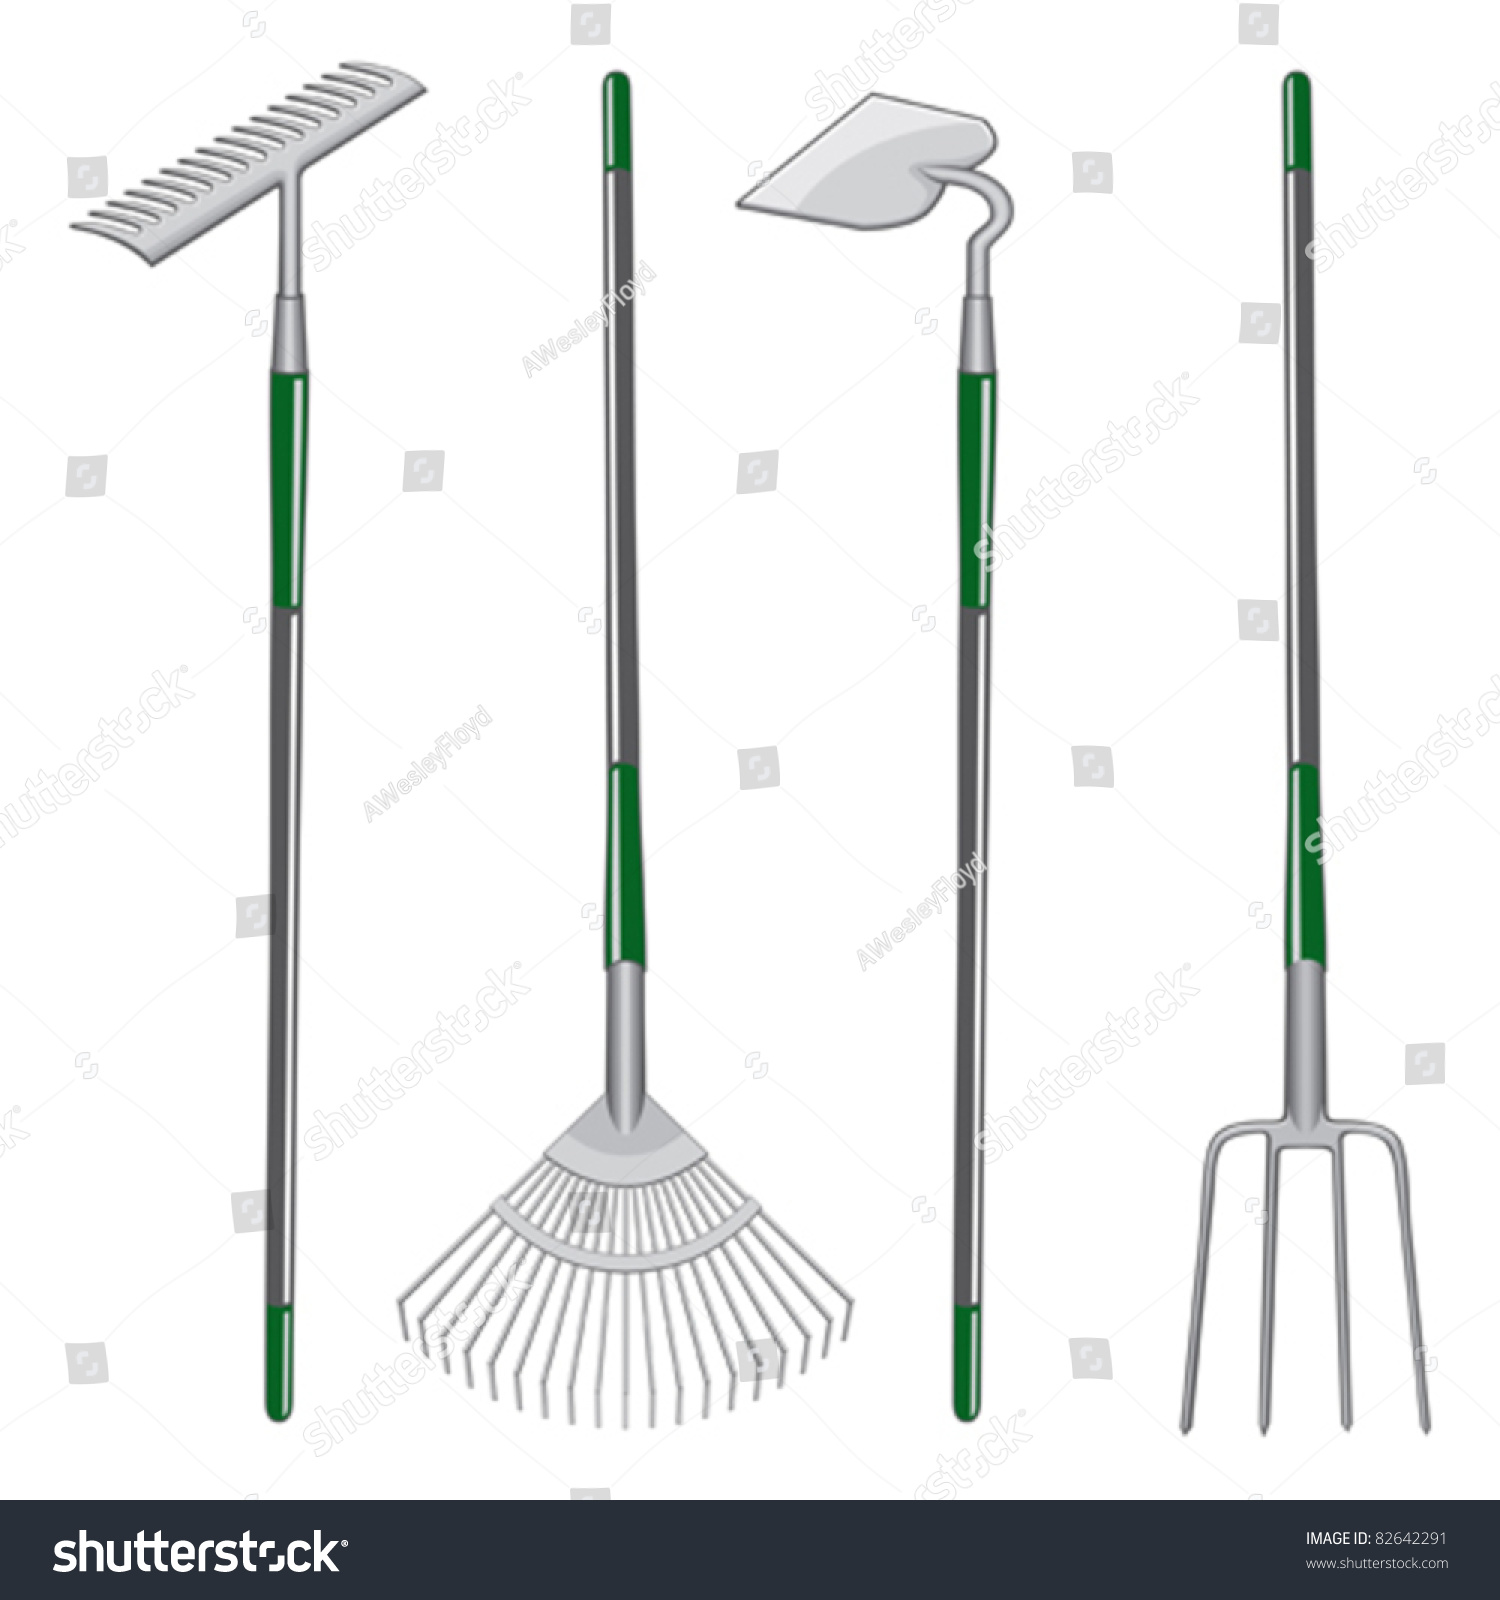 Rakes Garden Hoe Pitchfork Illustration Two Stock Vector 82642291